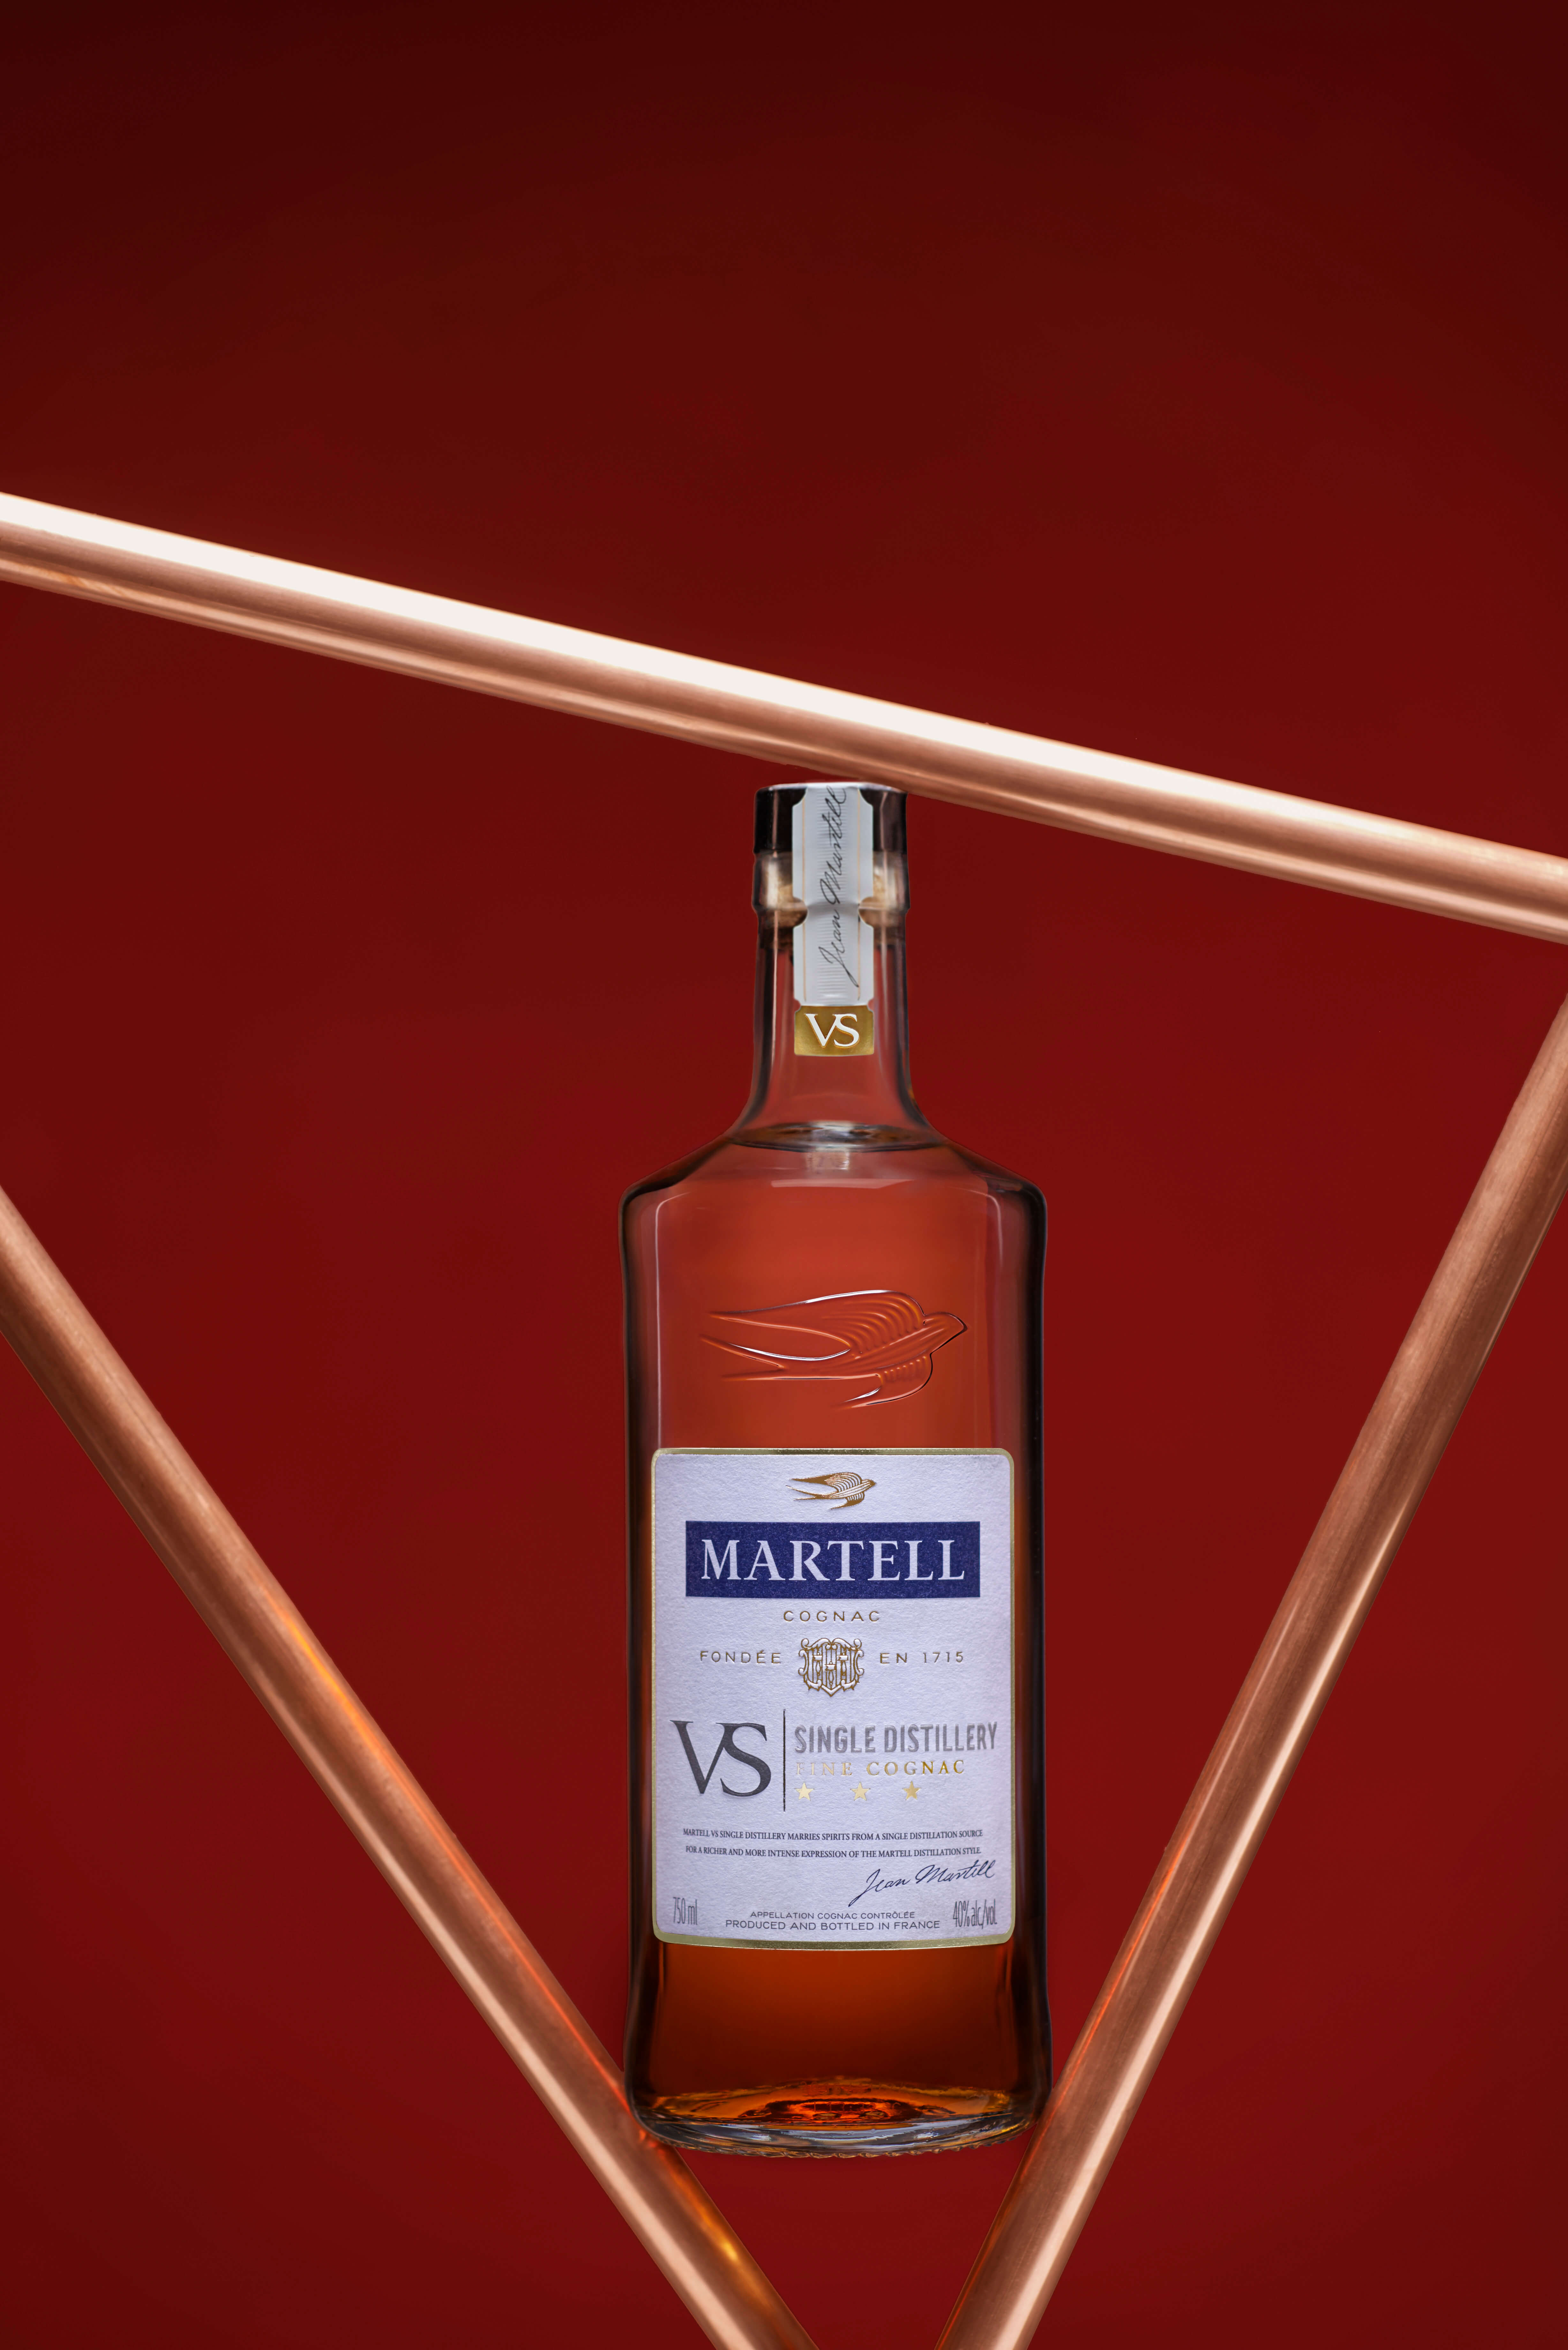 martel single men The vs single distillery is the latest expression to launch from martell, the world's oldest cognac house.